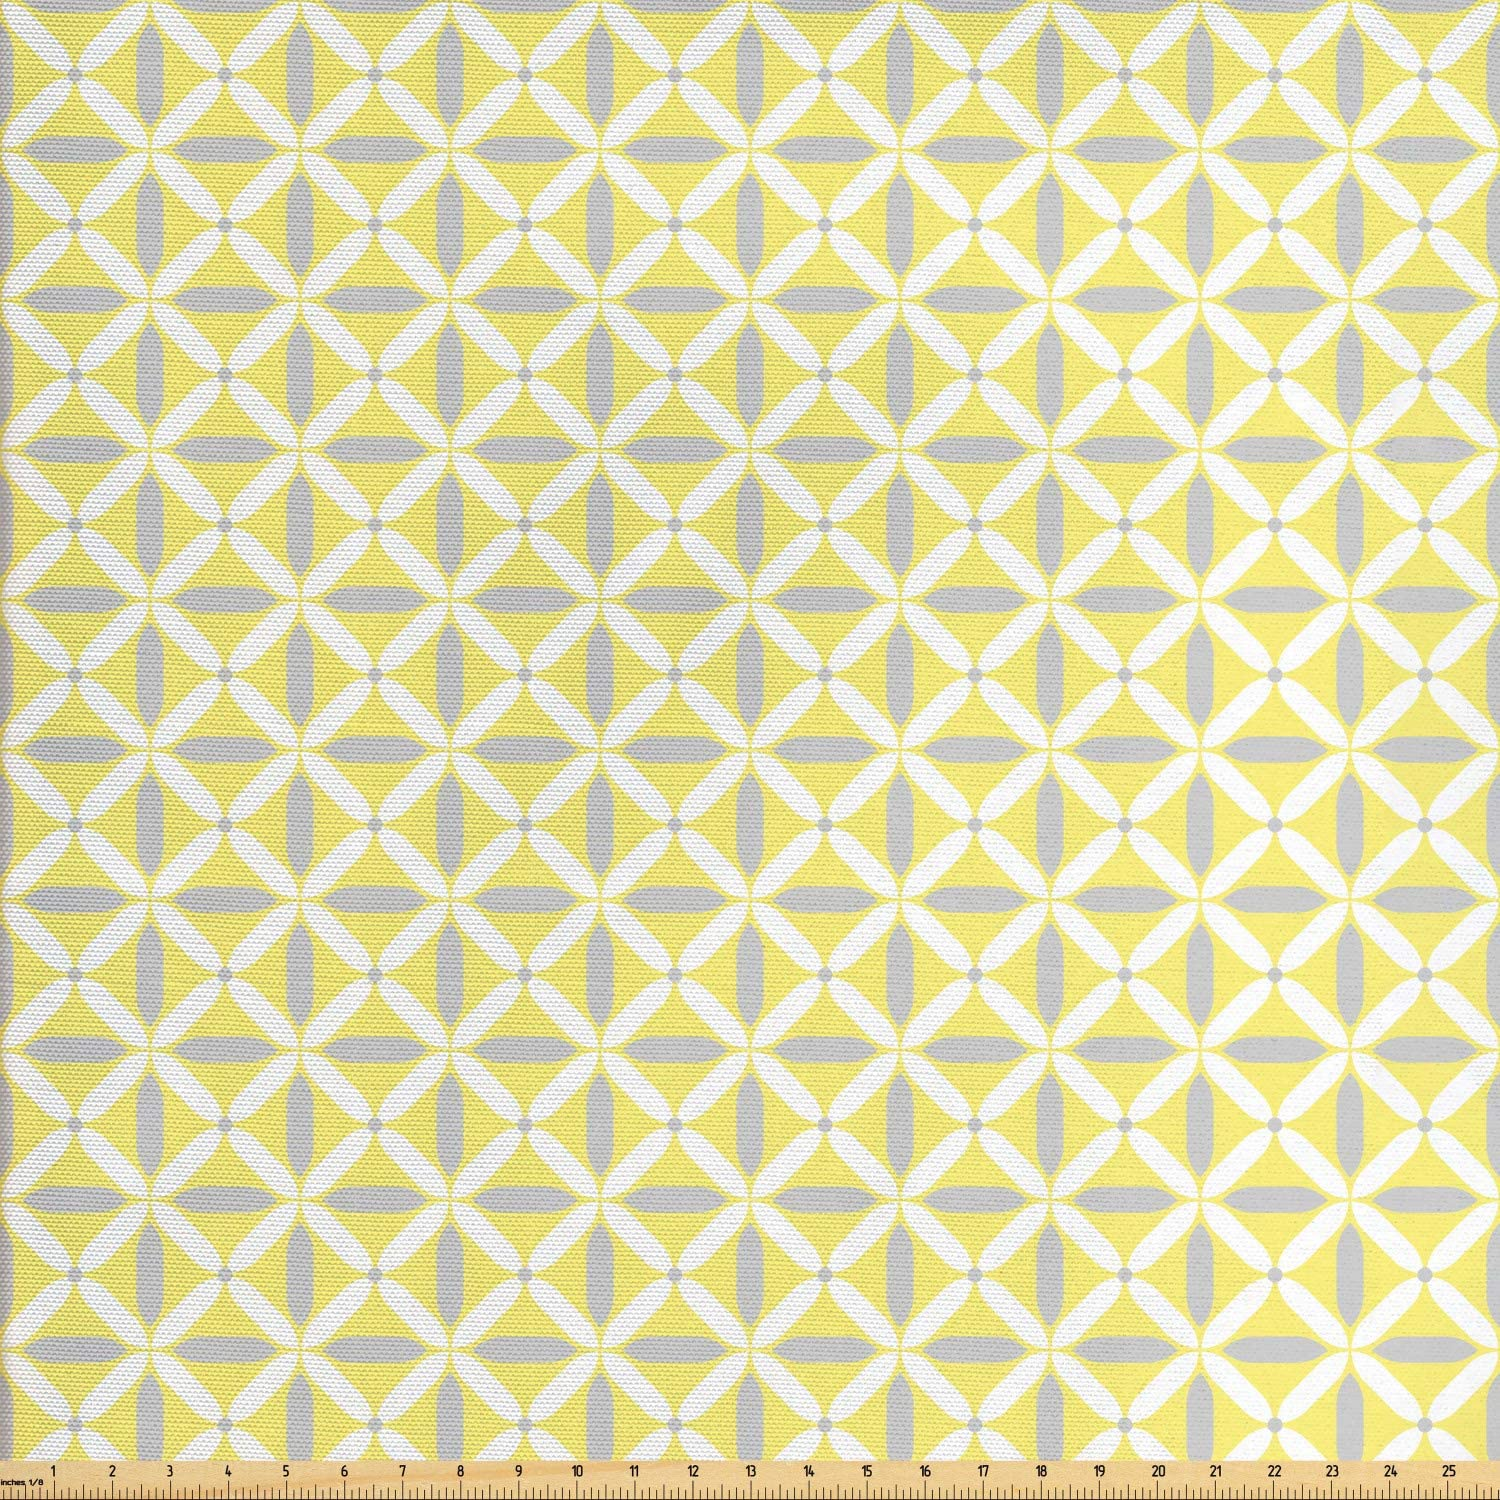 Ambesonne Abstract Fabric by The Yard, Print of Energetic Tone Geometric Shapes Contemporary Vibes, Decorative Fabric for Upholstery and Home Accents, 1 Yard, Pastel Yellow Pale Grey